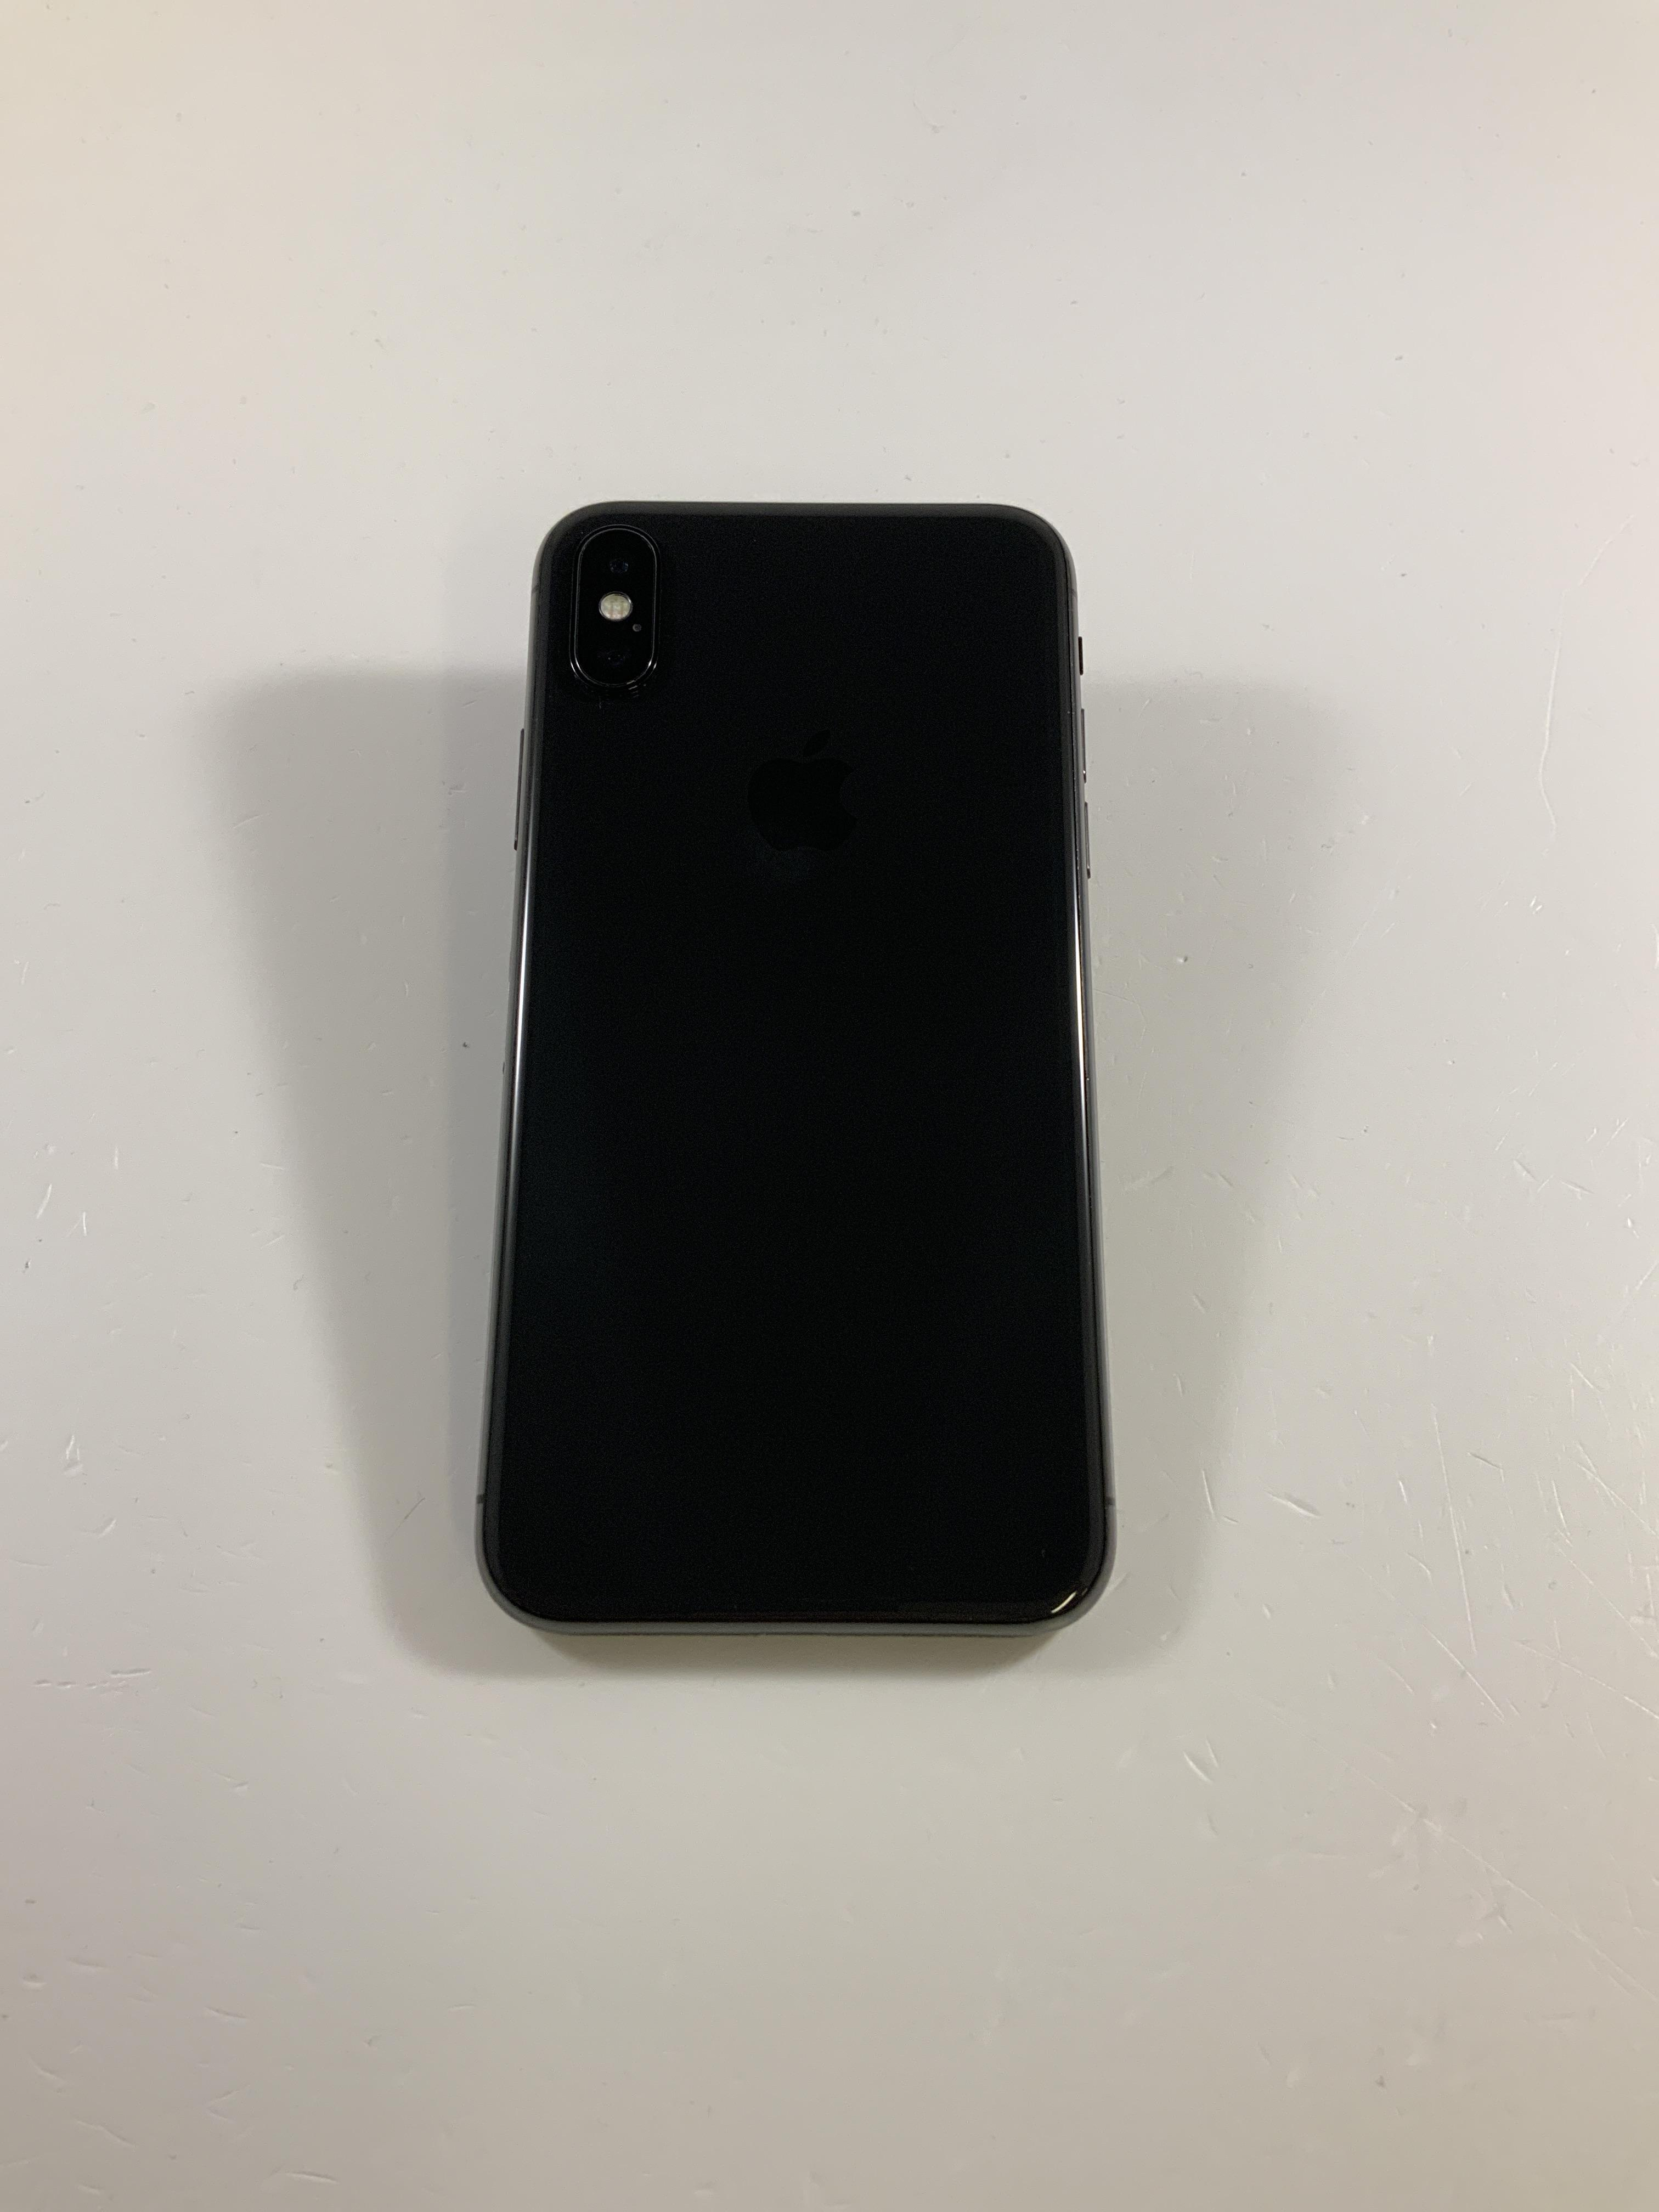 iPhone X 64GB, 64GB, Space Gray, Afbeelding 2